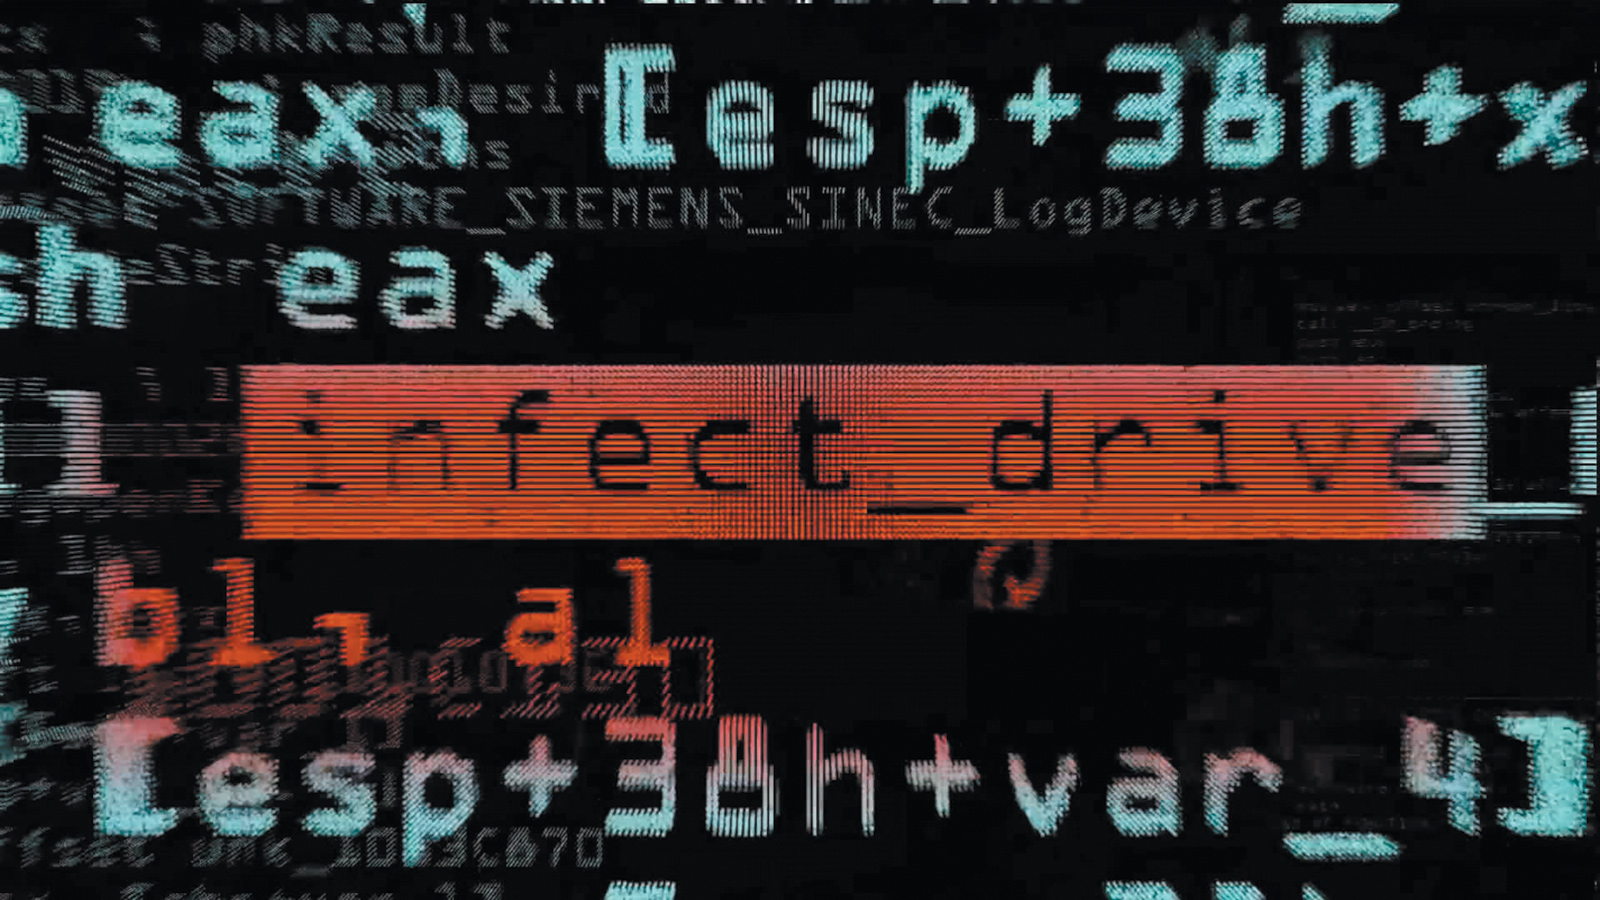 A section of code from the Internet security firm Symantec's breakdown of the Stuxnet virus; from Zero Days